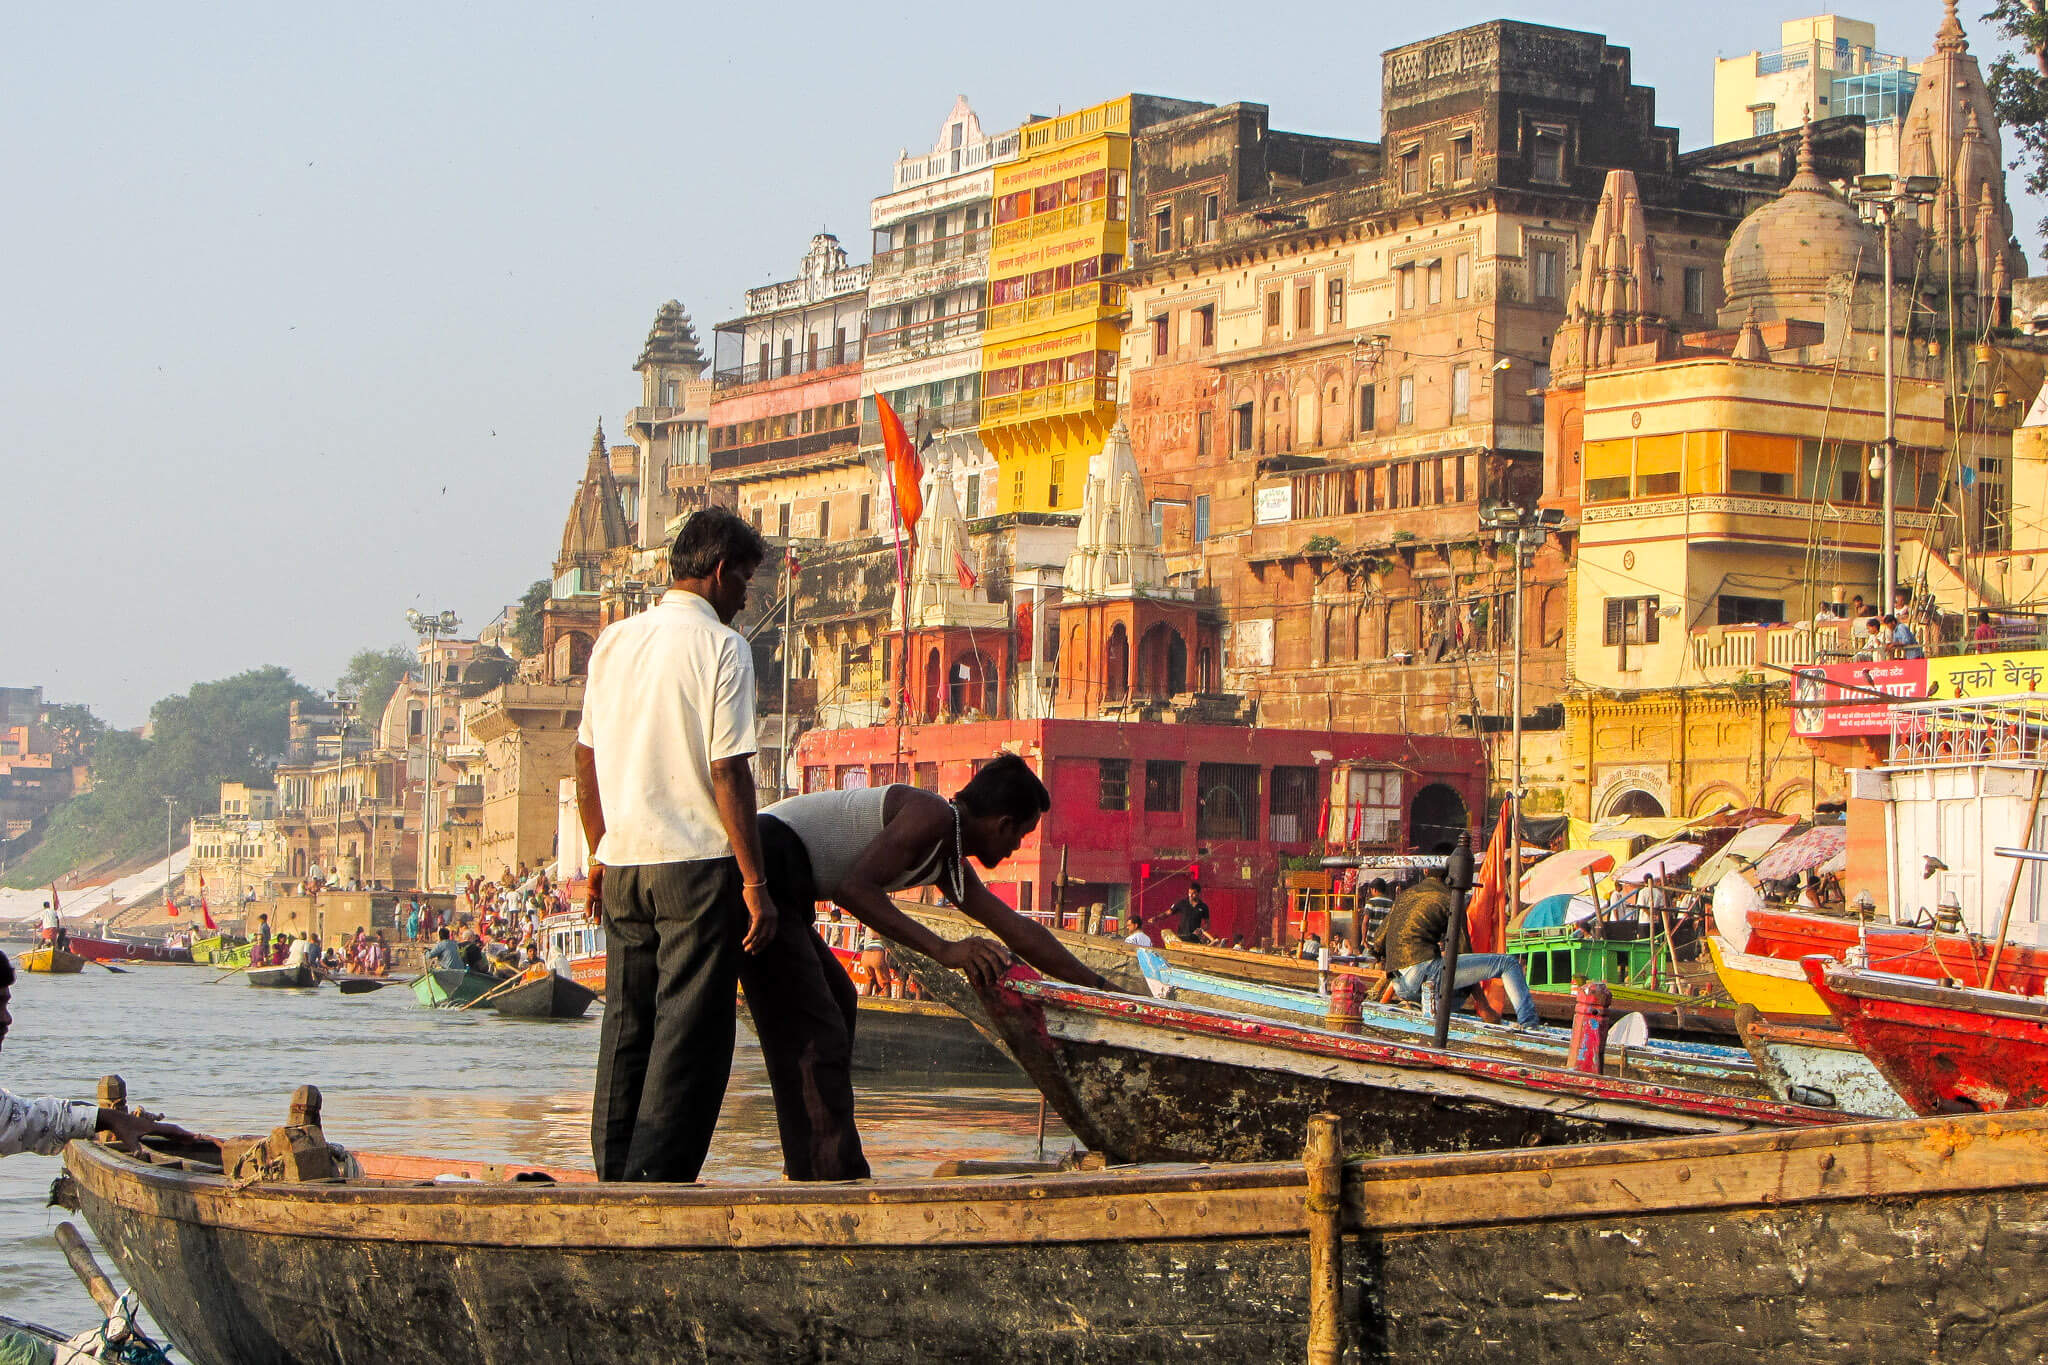 Varanasi, the most holy city for Hindus